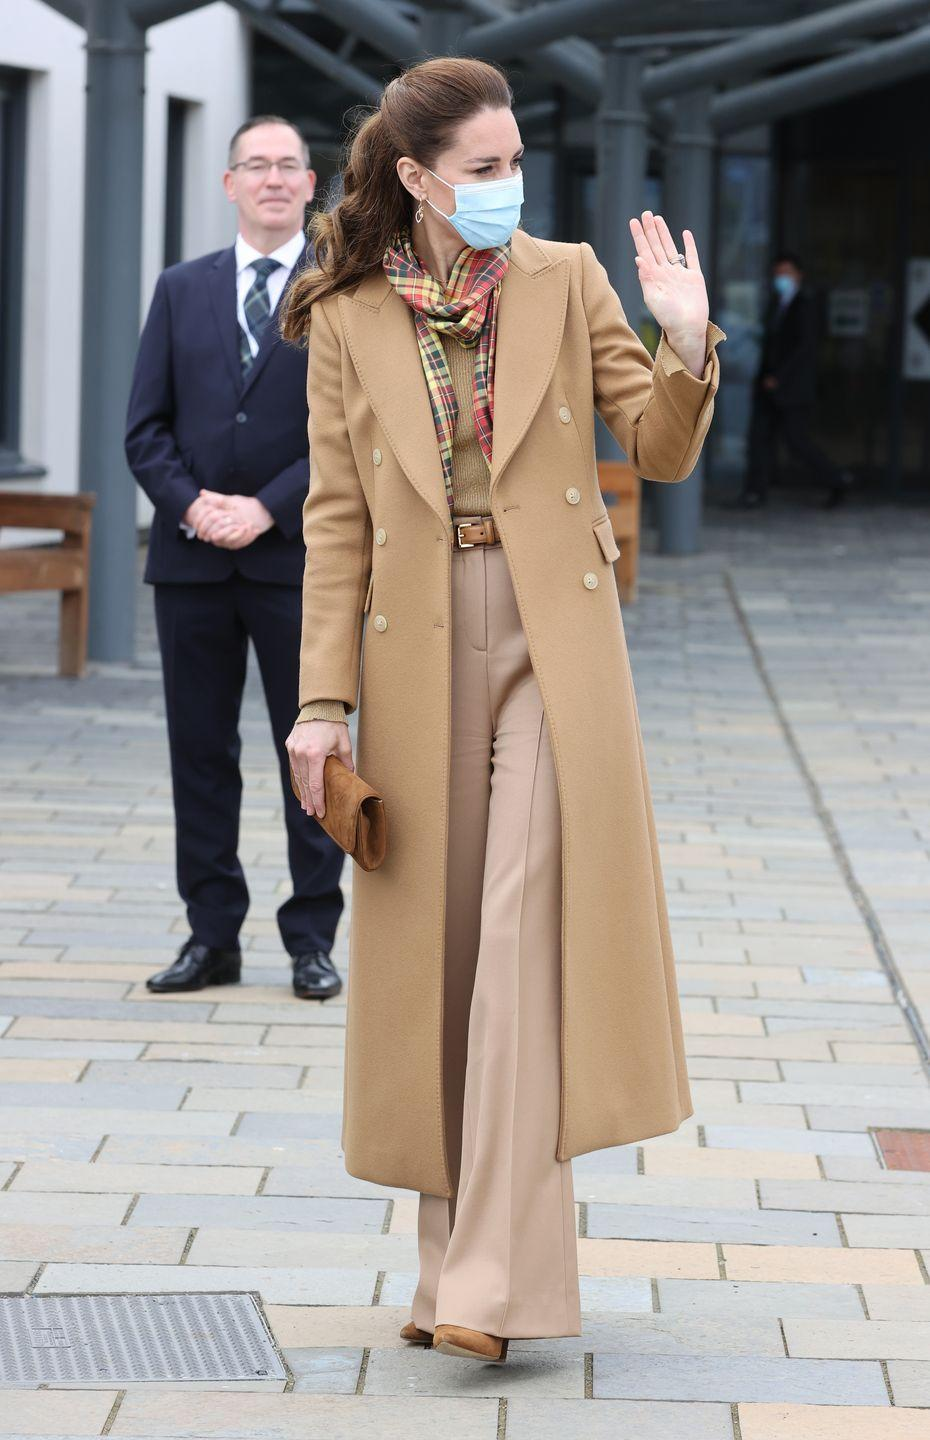 """<p>In her second monochromatic look of the week, Kate chose an all-camel outfit to continue <a href=""""https://www.townandcountrymag.com/society/tradition/g36519274/prince-william-kate-middleton-scotland-trip-2021-photos/"""" rel=""""nofollow noopener"""" target=""""_blank"""" data-ylk=""""slk:her tour of Scotland."""" class=""""link rapid-noclick-resp"""">her tour of Scotland.</a> The Duchess paired a double-breasted Massimo Dutti coat with khaki-colored wide-leg trousers, a scoop-neck sweater, and a matching brown belt, pumps, and clutch. She accessorized with a scarf in Strathearn tartan, symbolizing the couple's title in Scotland: the Earl and Countess of Strathearn.</p><p><a class=""""link rapid-noclick-resp"""" href=""""https://go.redirectingat.com?id=74968X1596630&url=https%3A%2F%2Fwww.tedbaker.com%2Fus%2FWomens%2FClothing%2FJackets-Coats%2FYECARA-Double-Breasted-Peaked-Lapel-Coat-Camel%2Fp%2F252384-CAMEL&sref=https%3A%2F%2Fwww.townandcountrymag.com%2Fstyle%2Ffashion-trends%2Fnews%2Fg1633%2Fkate-middleton-fashion%2F"""" rel=""""nofollow noopener"""" target=""""_blank"""" data-ylk=""""slk:Shop a Similar Coat"""">Shop a Similar Coat</a></p>"""